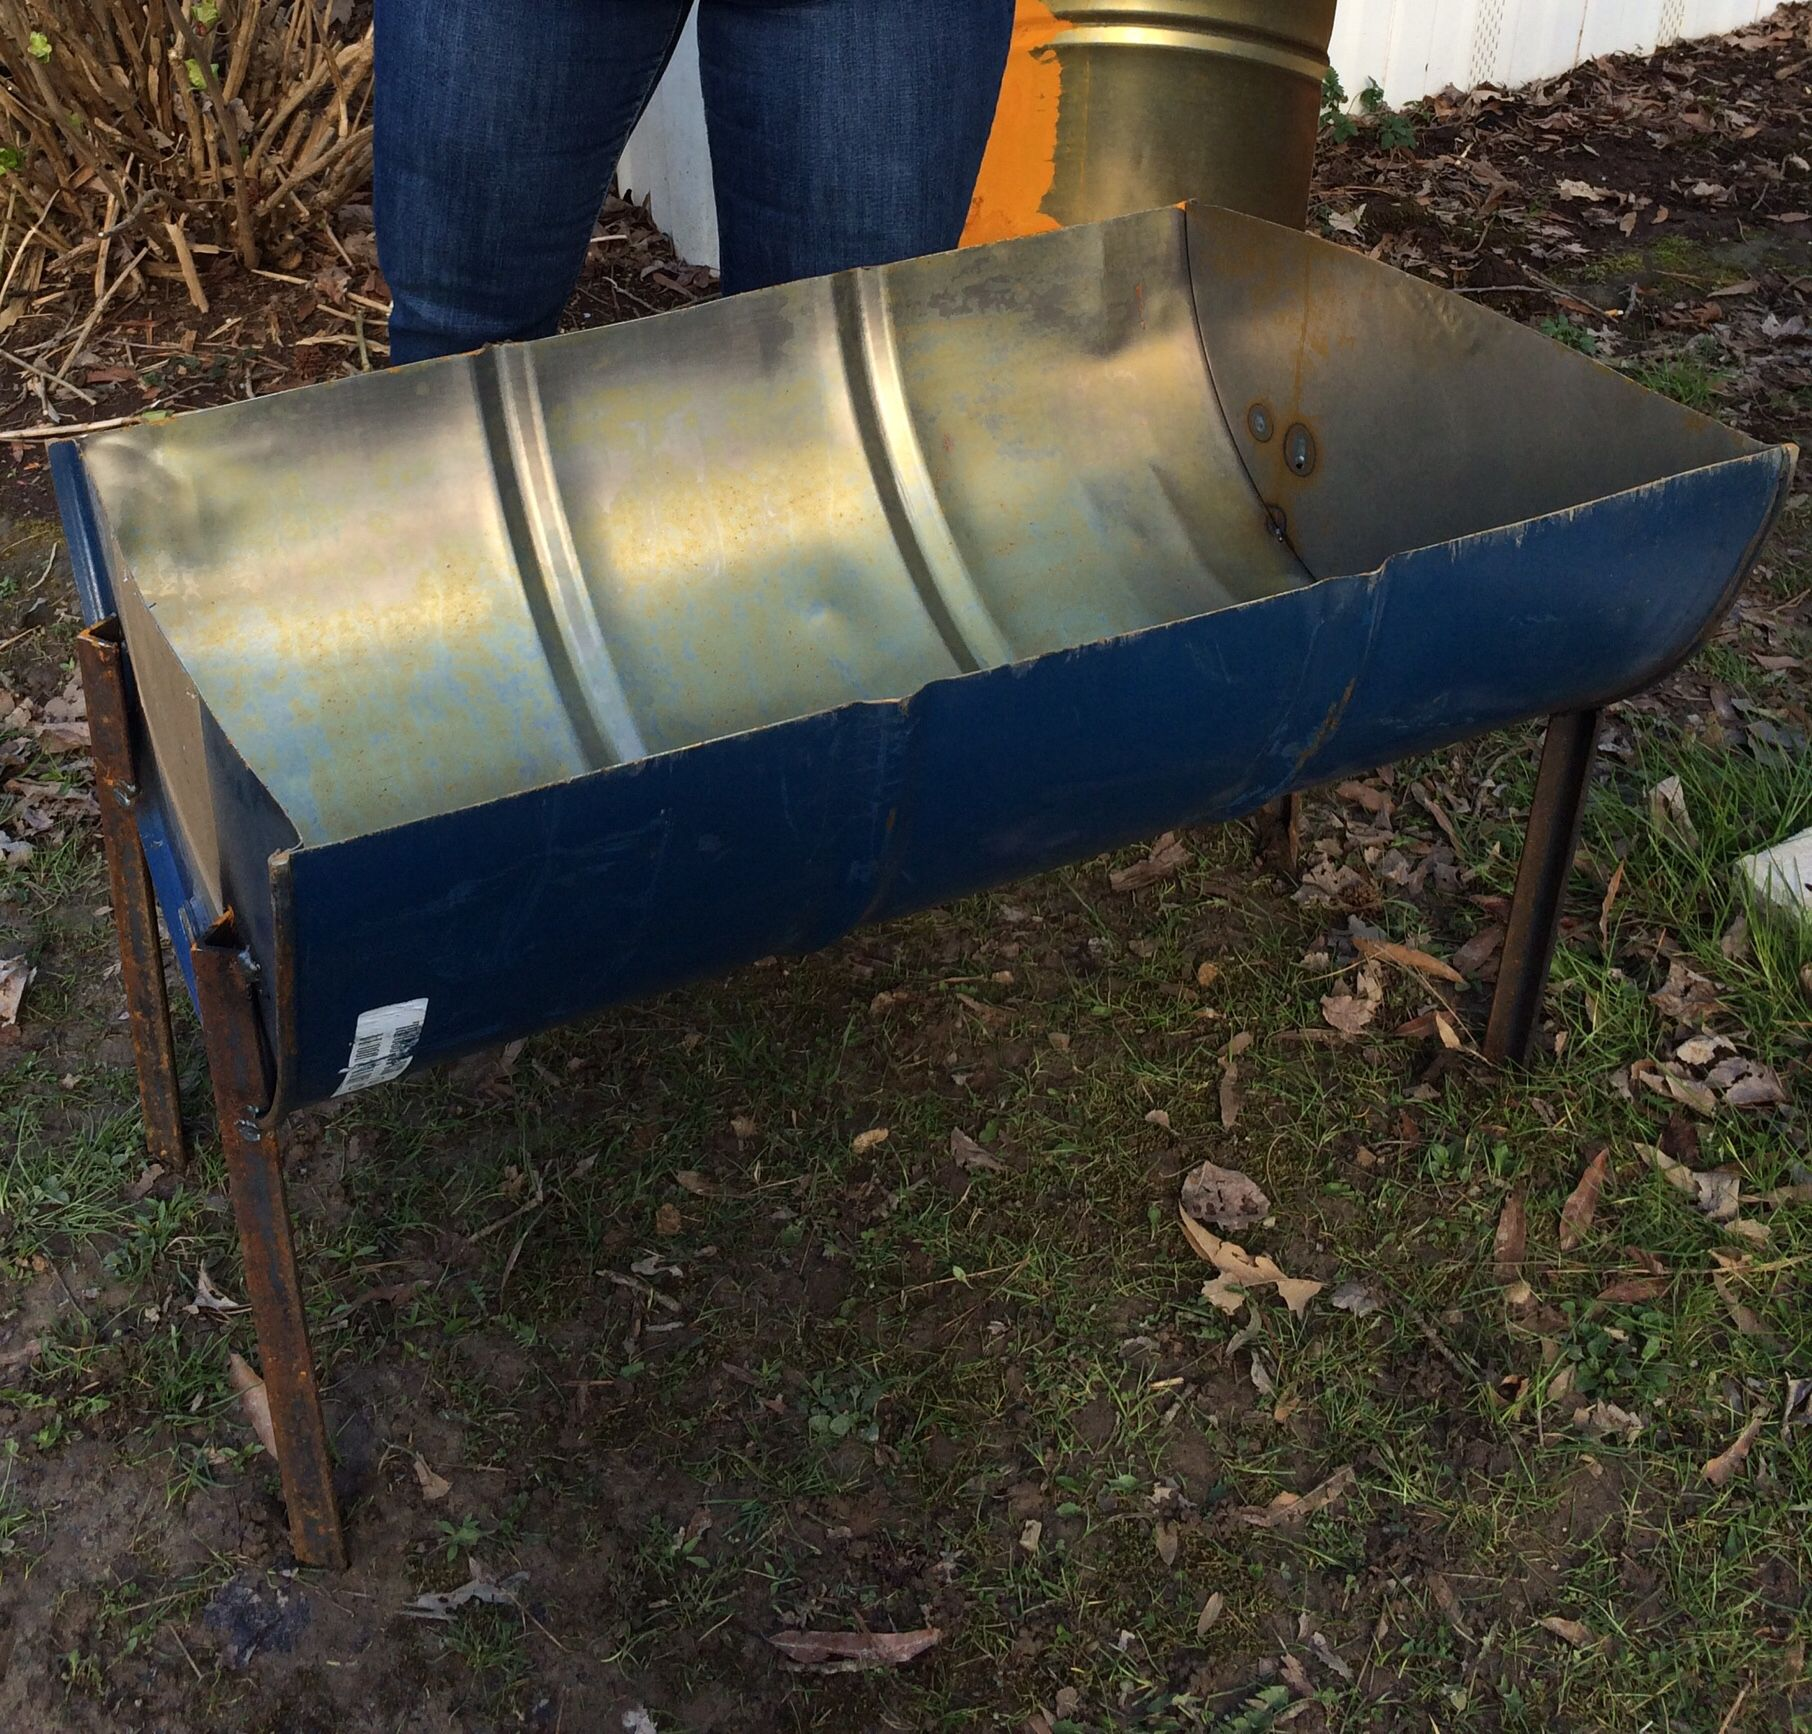 55 Gallon Drum Made Into A Fire Pit Barrel Fire Pit Homemade Fire Pit Diy Fire Pit